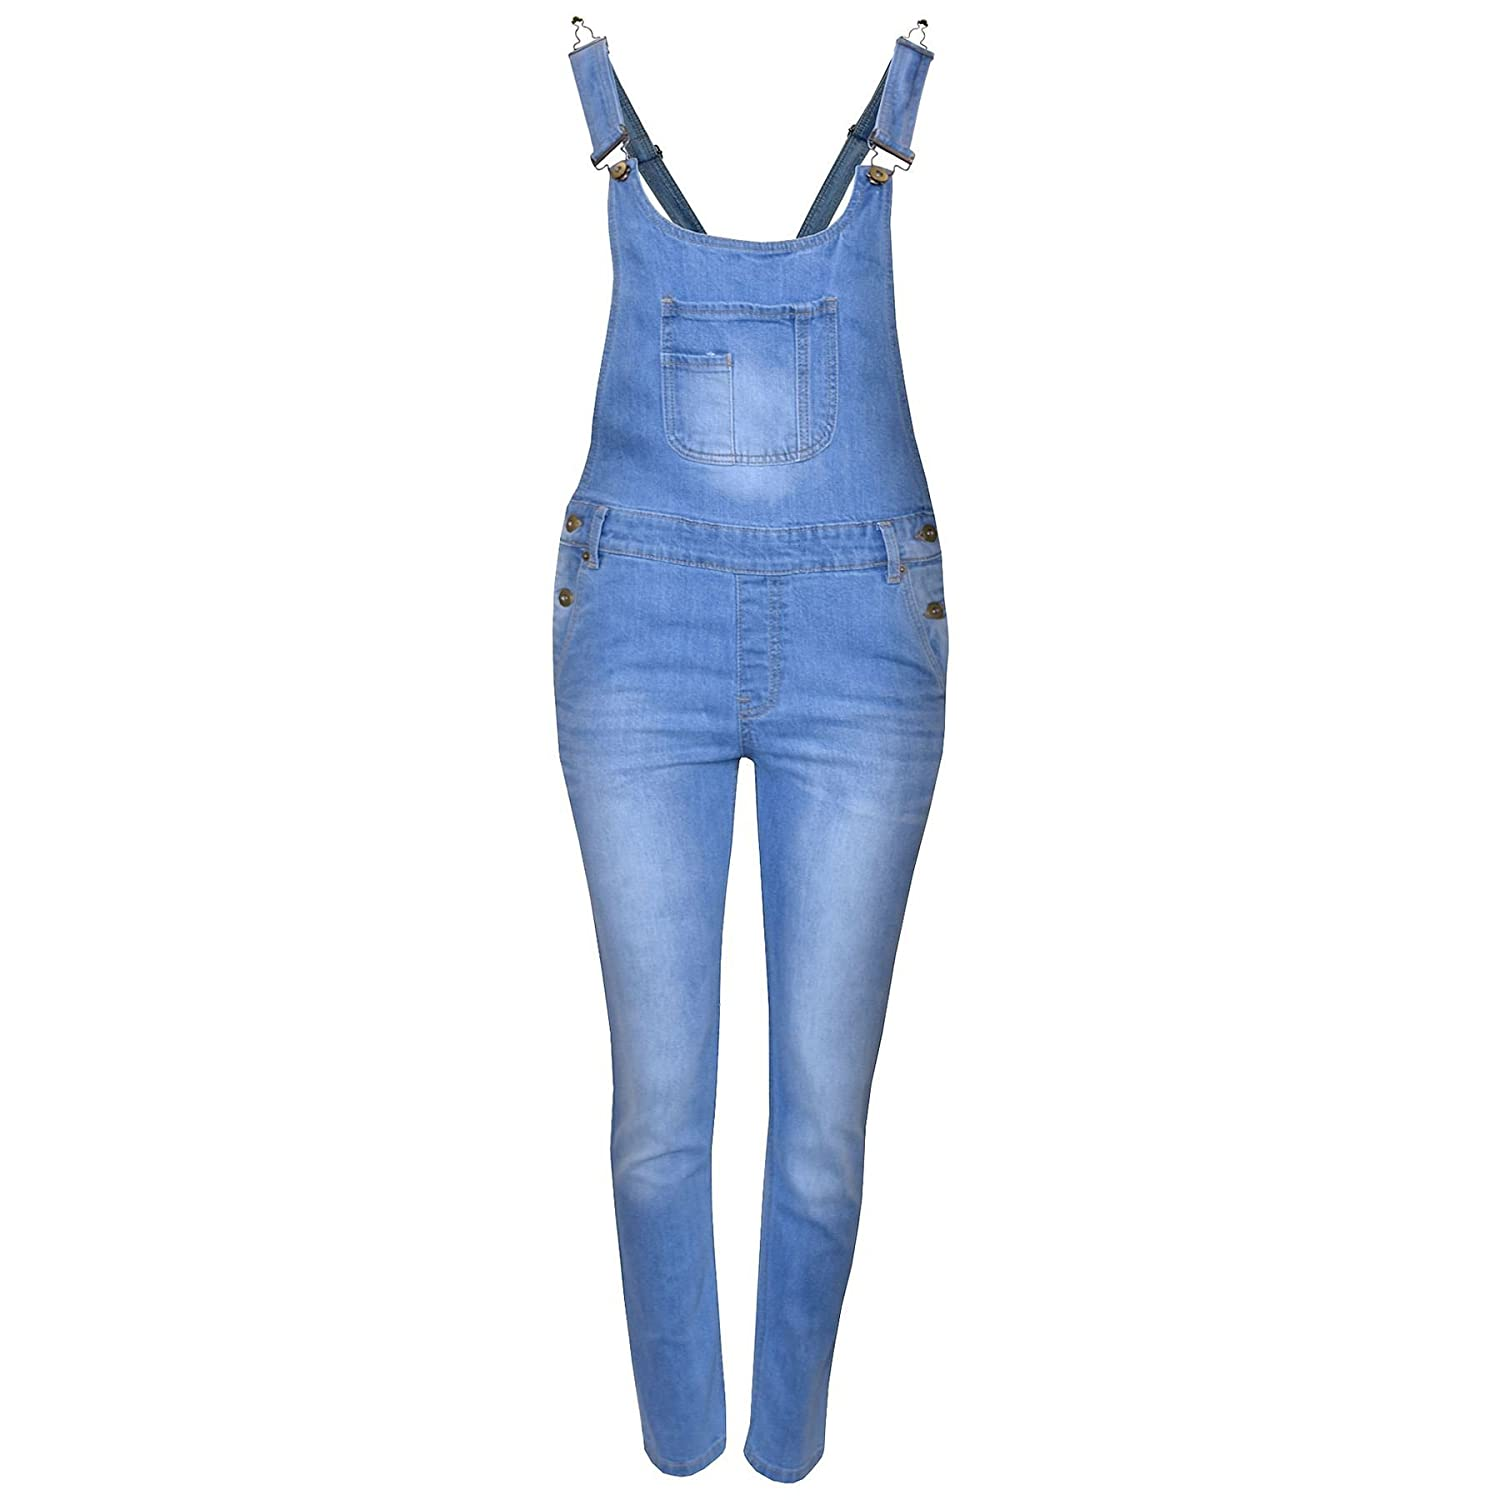 Kids Girls Denim Stretch Dungaree Jumpsuit Playsuit All In One Jeans 7-13 Years